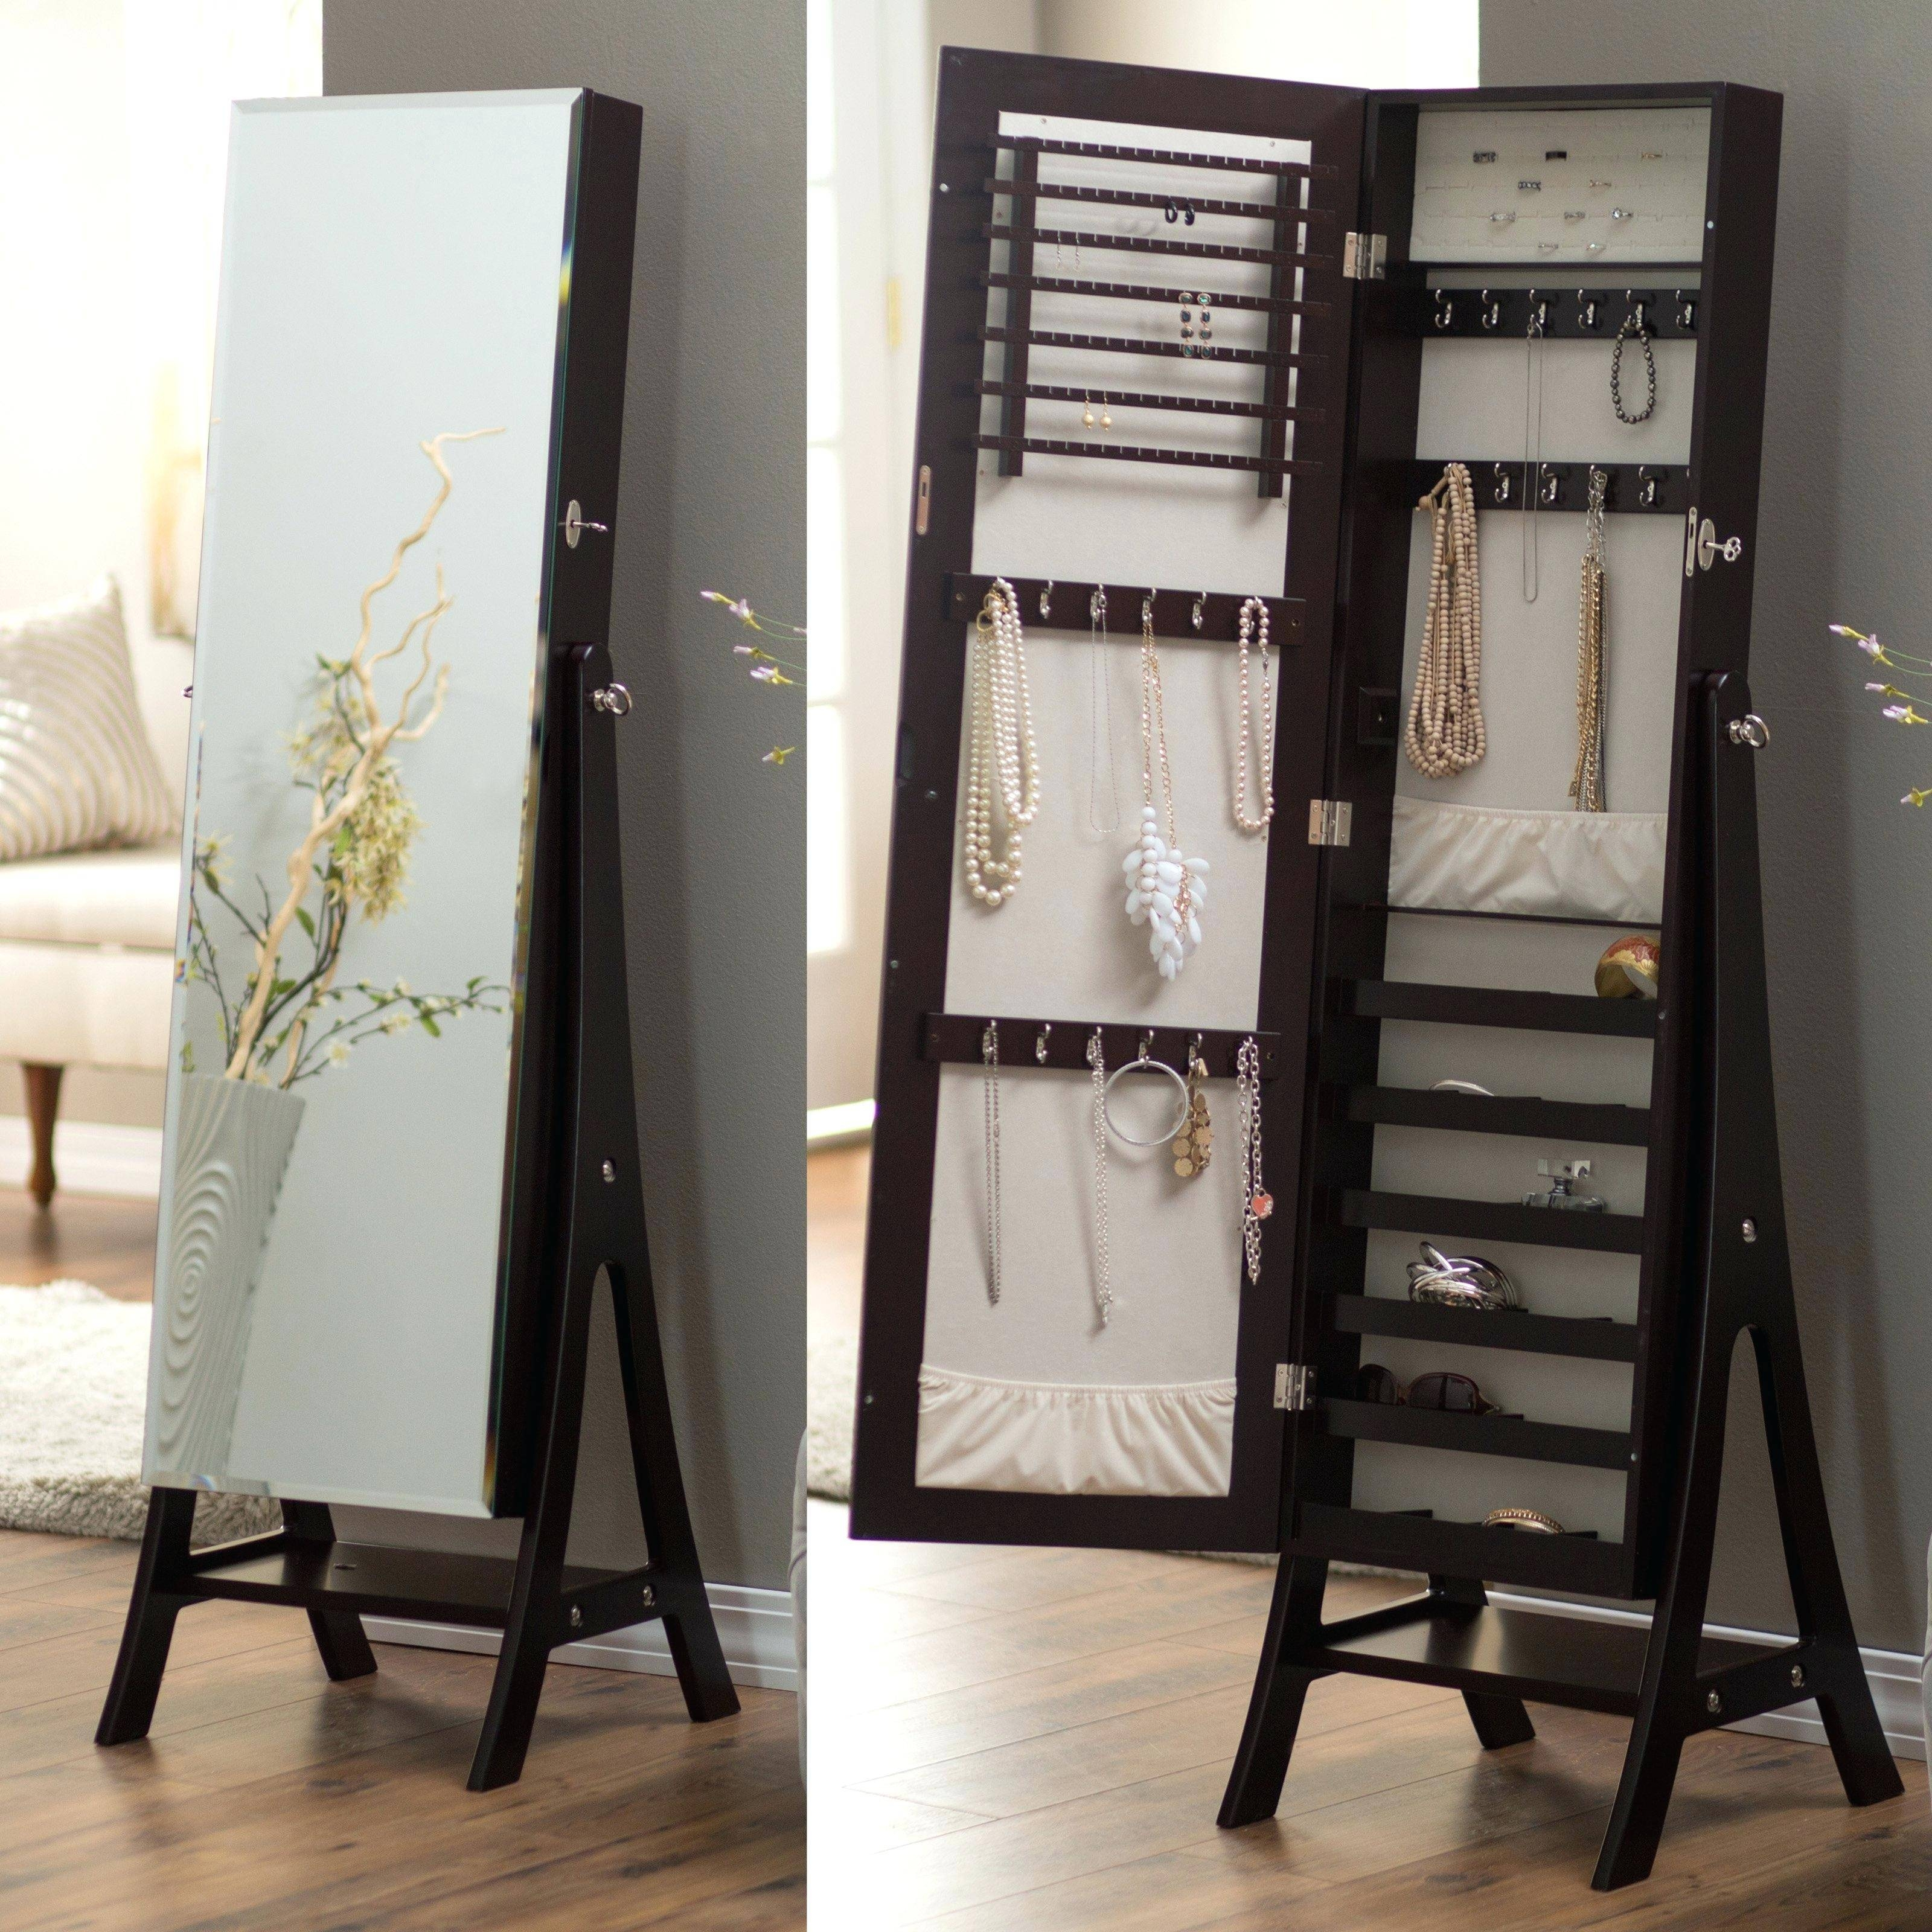 Standing Mirror Jewelry Armoire – Abolishmcrm pertaining to Large Standing Mirrors (Image 14 of 15)